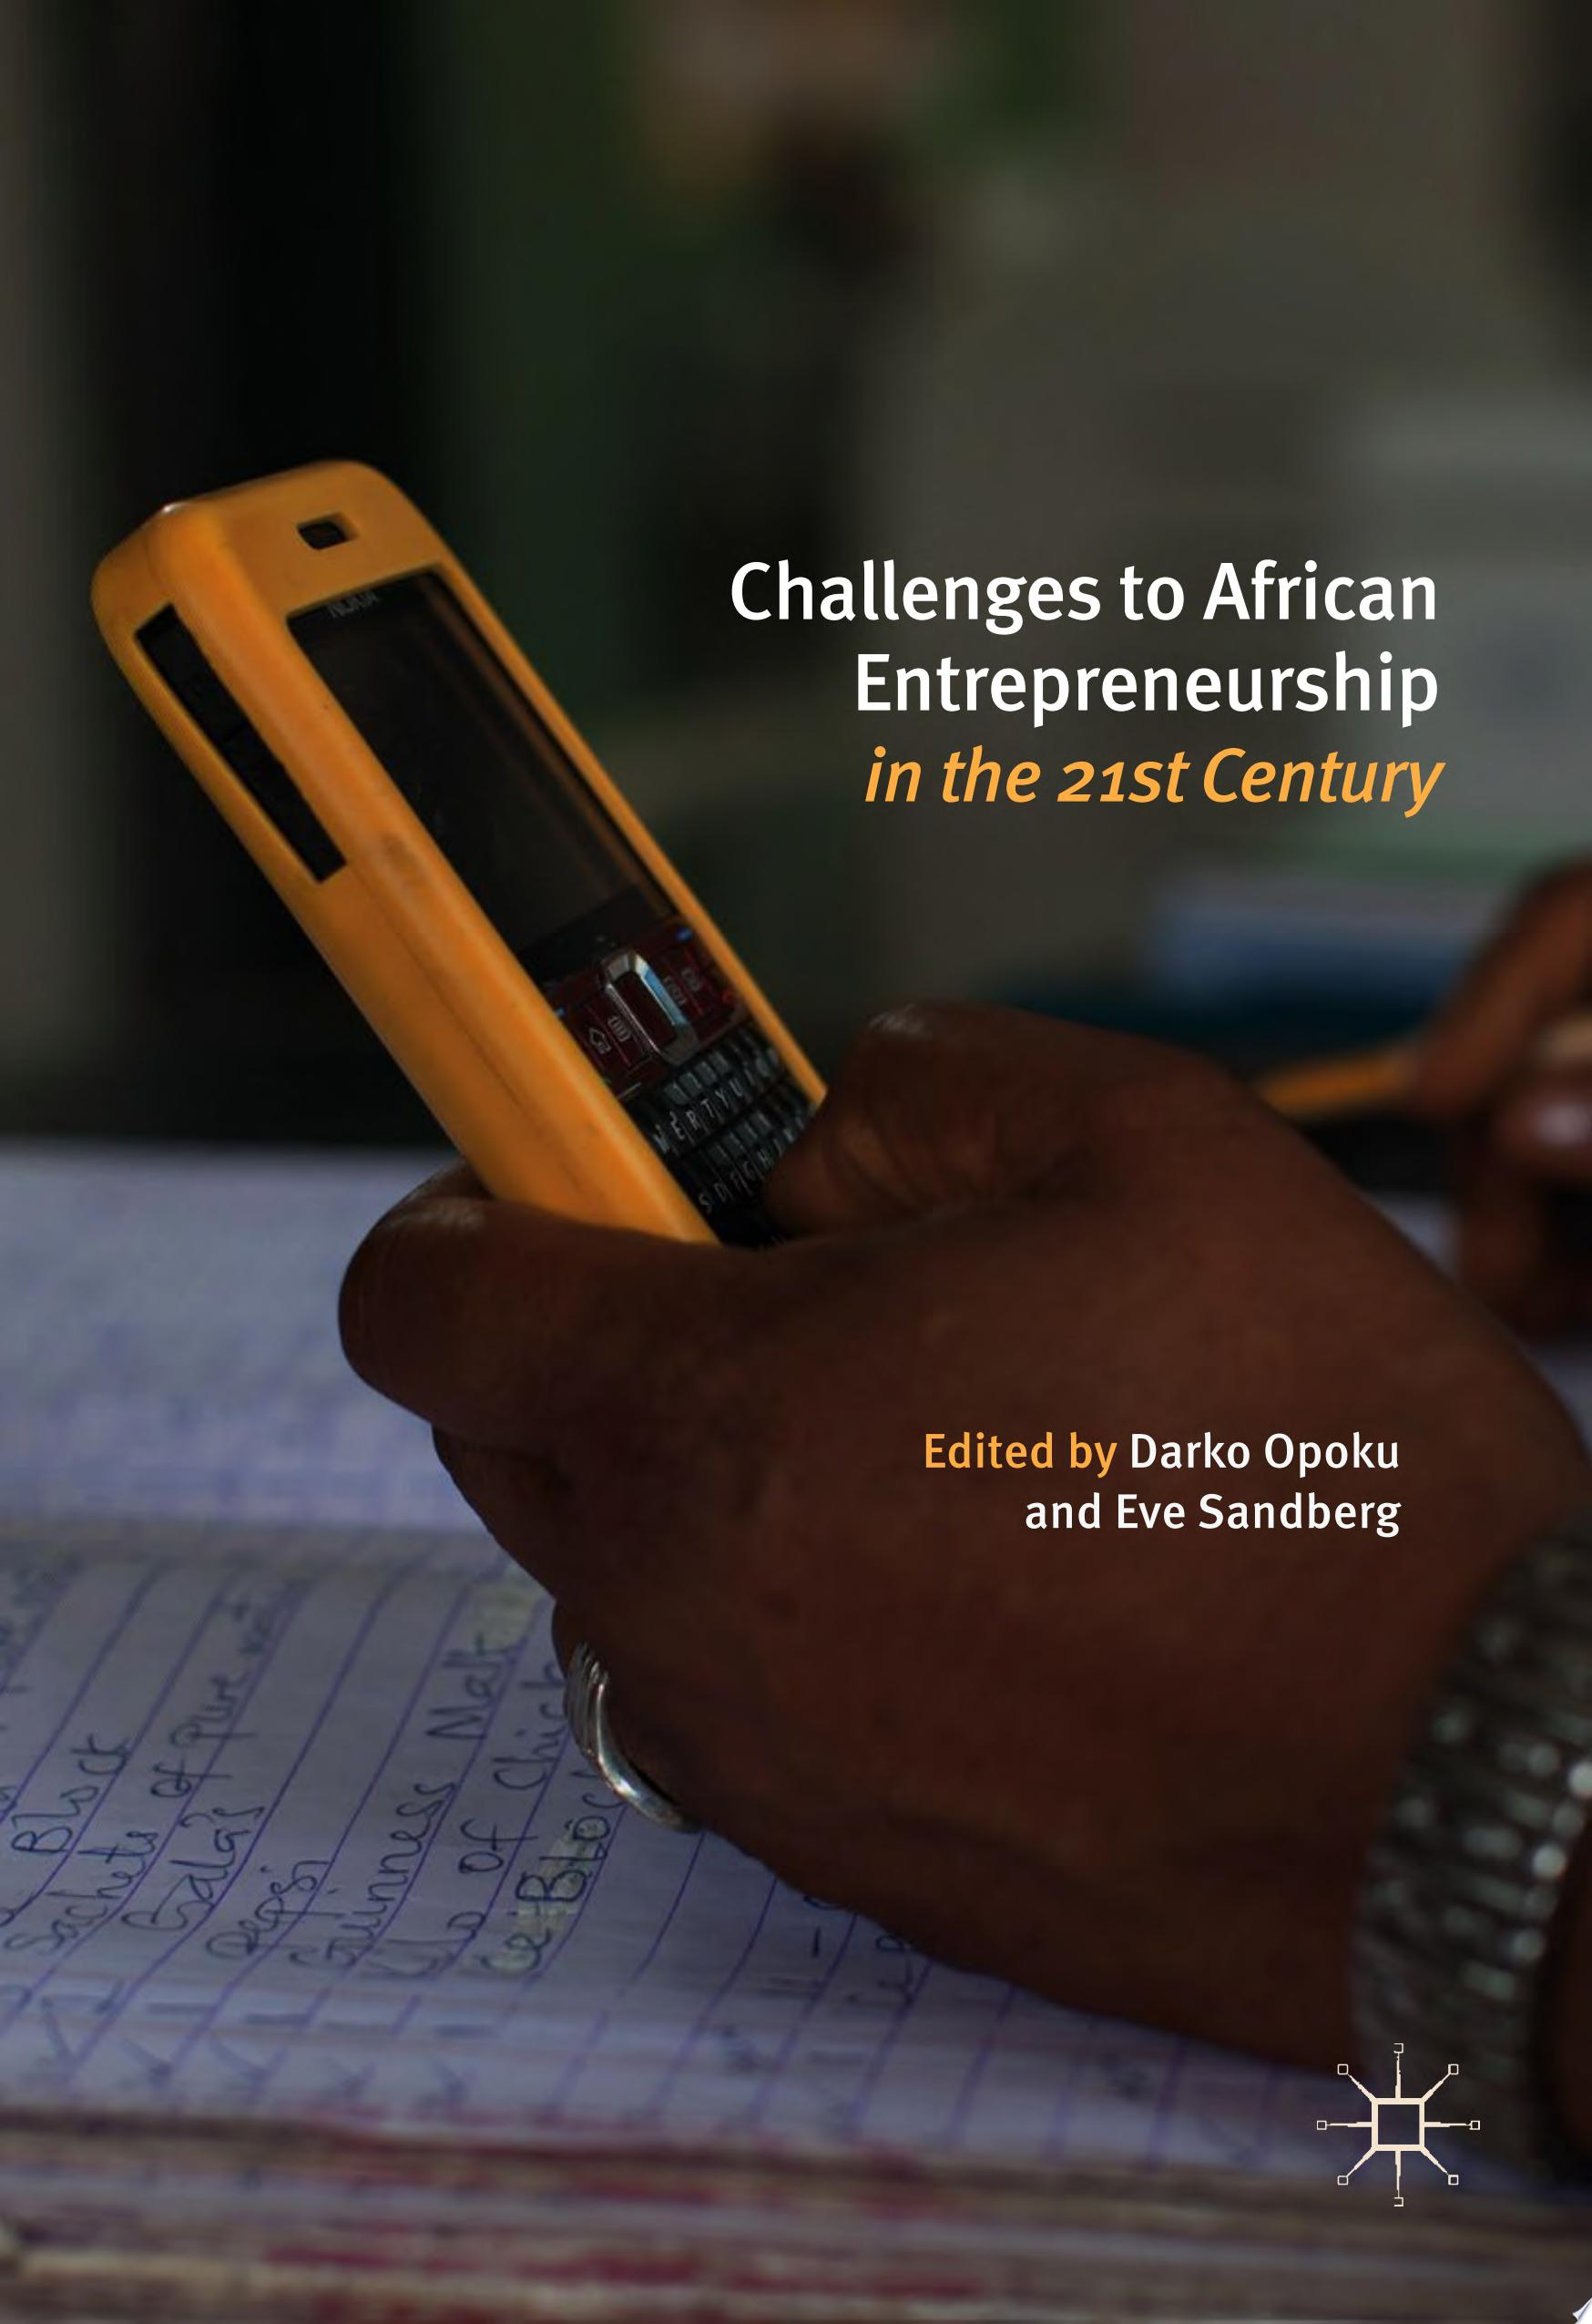 Challenges to African Entrepreneurship in the 21st Century